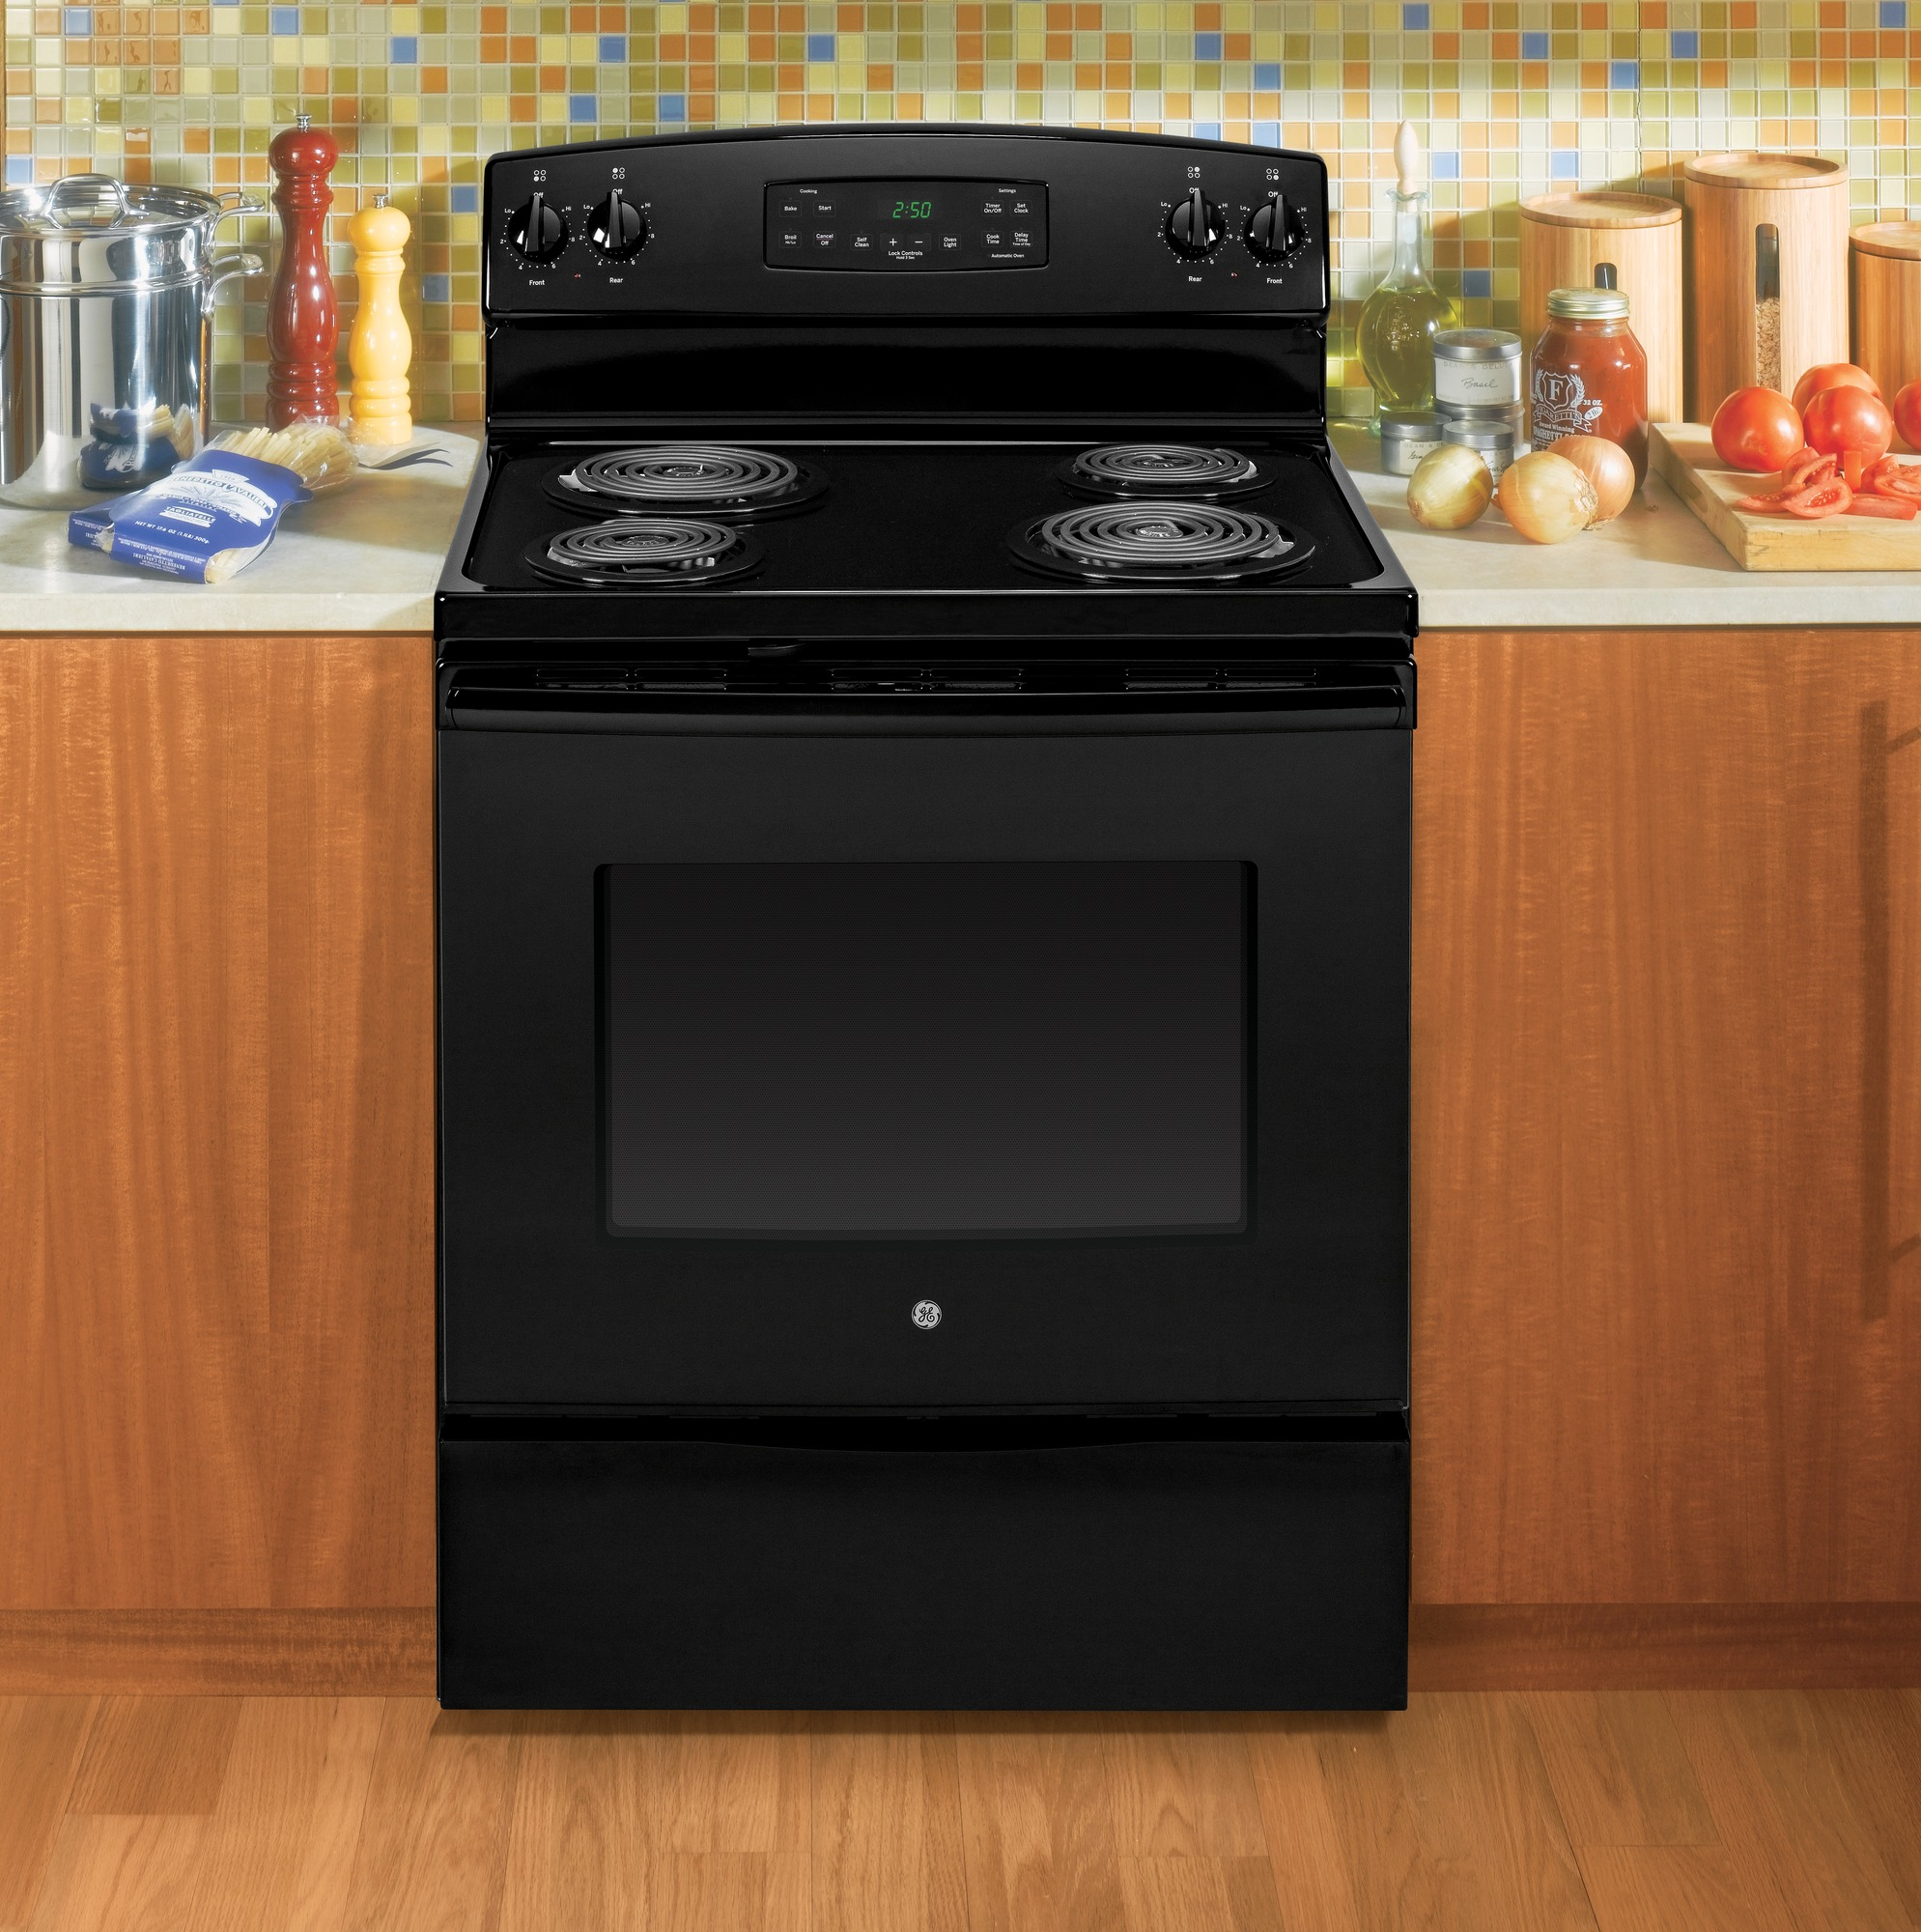 GE Appliances JB250DFBB 5.3 cu. ft. Free-Standing Electric Range - Black